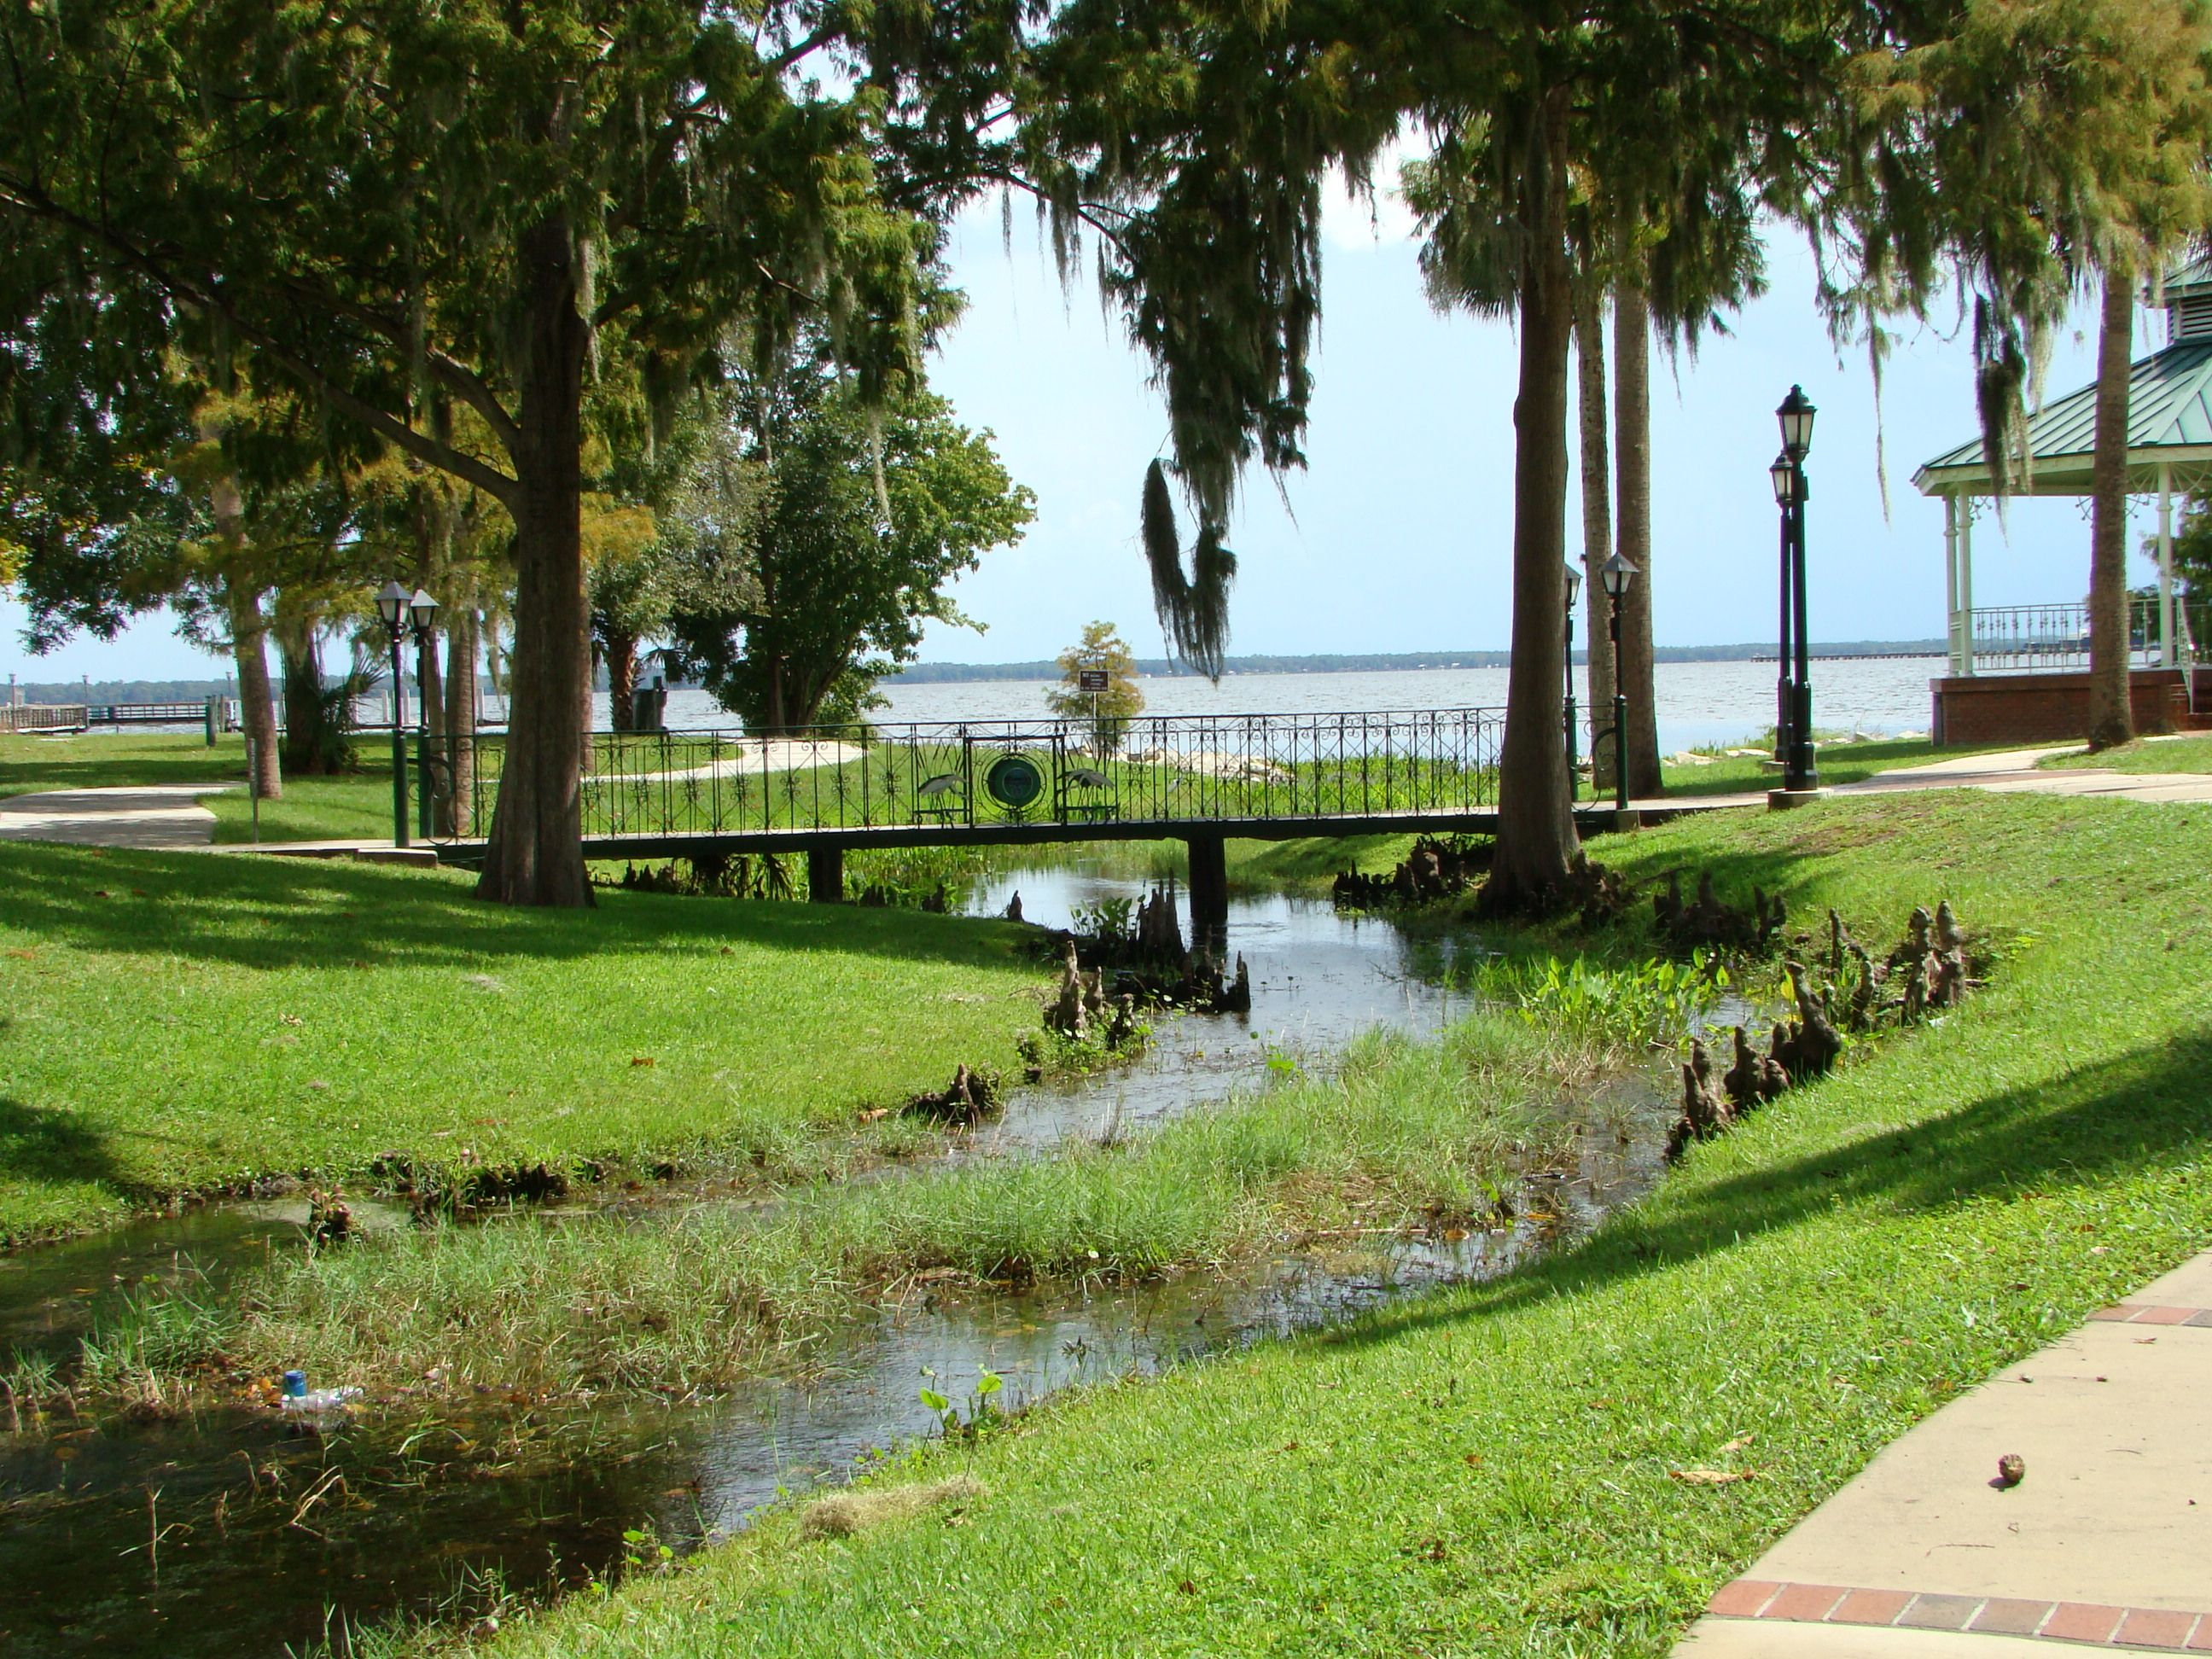 The spring that leads into the St Johns River in Spring